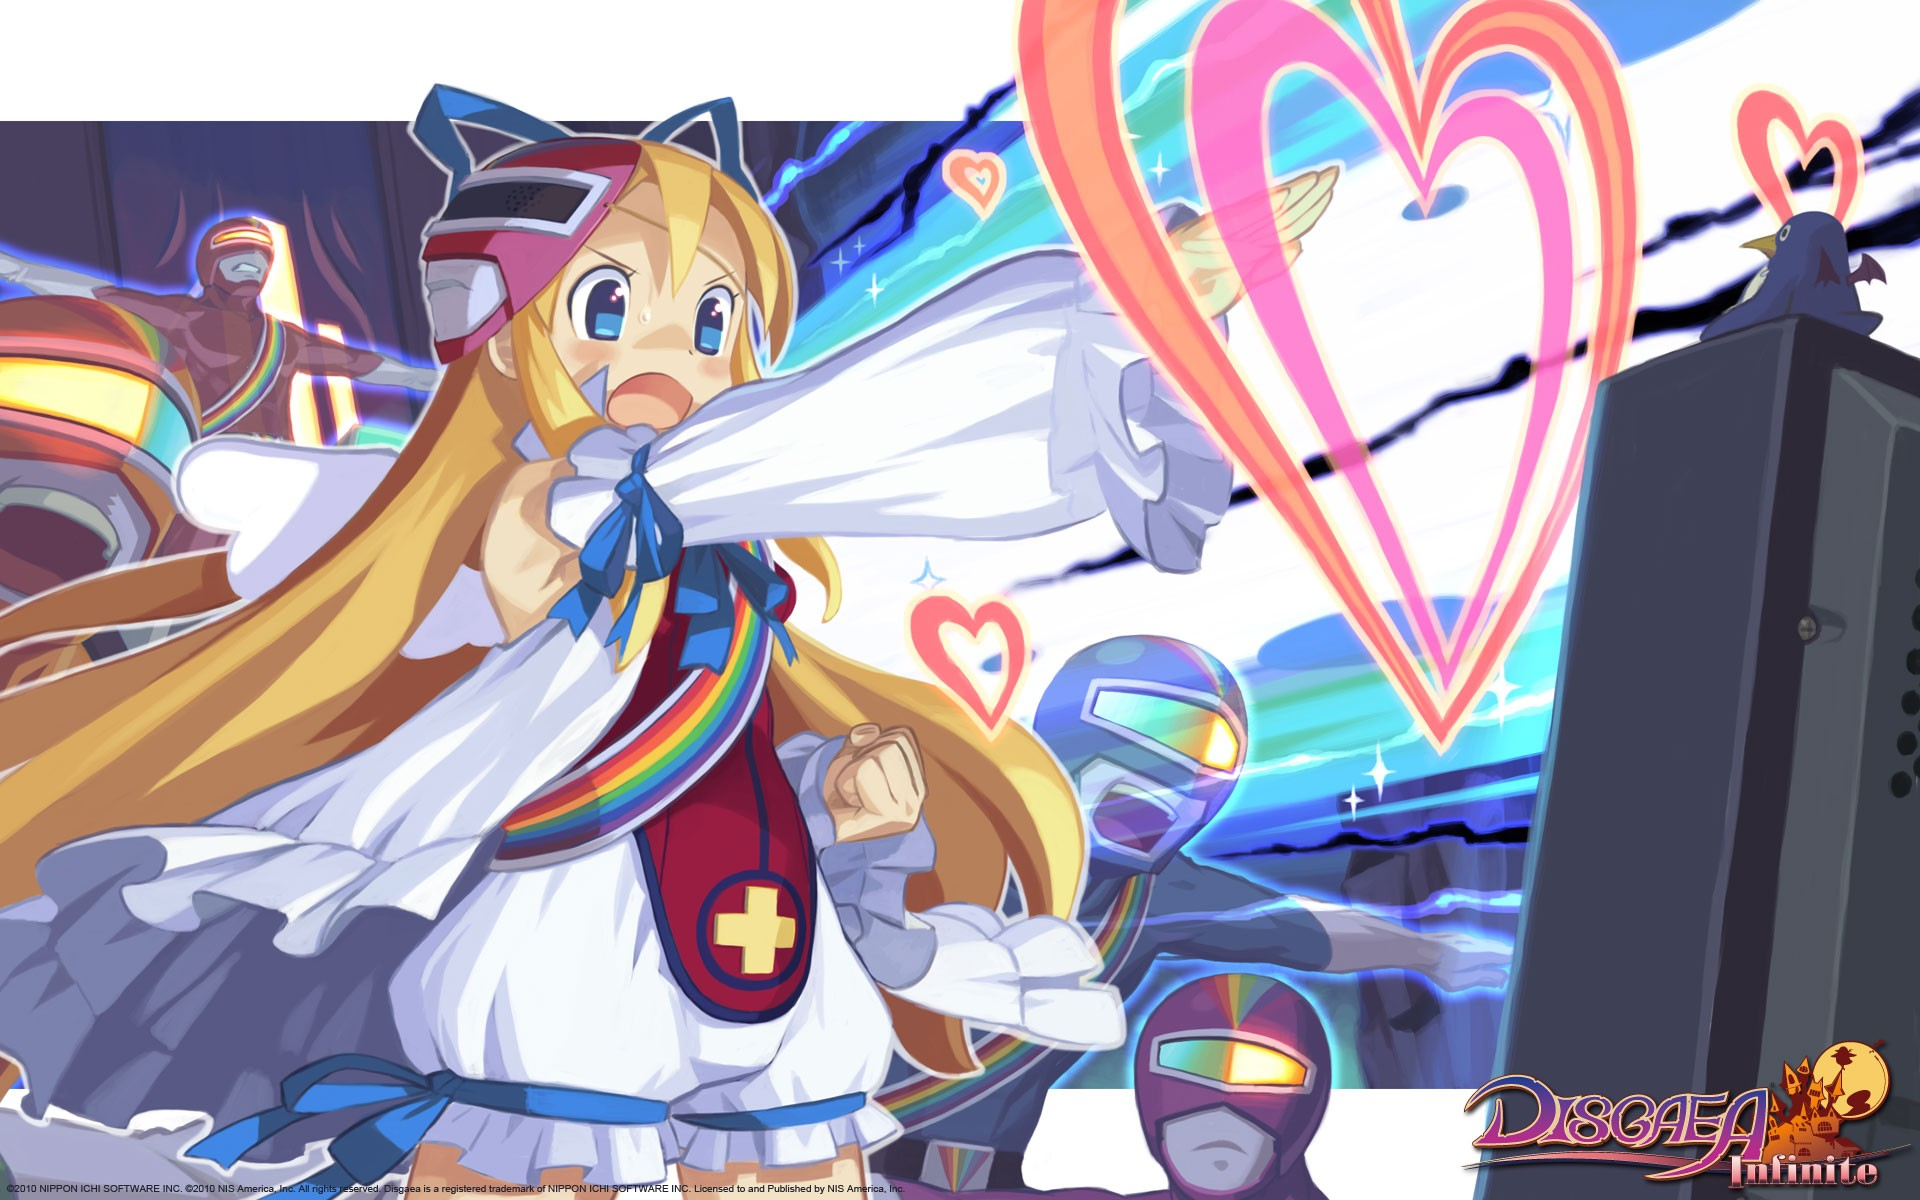 Disgaea Wallpapers - WallpaperSafari